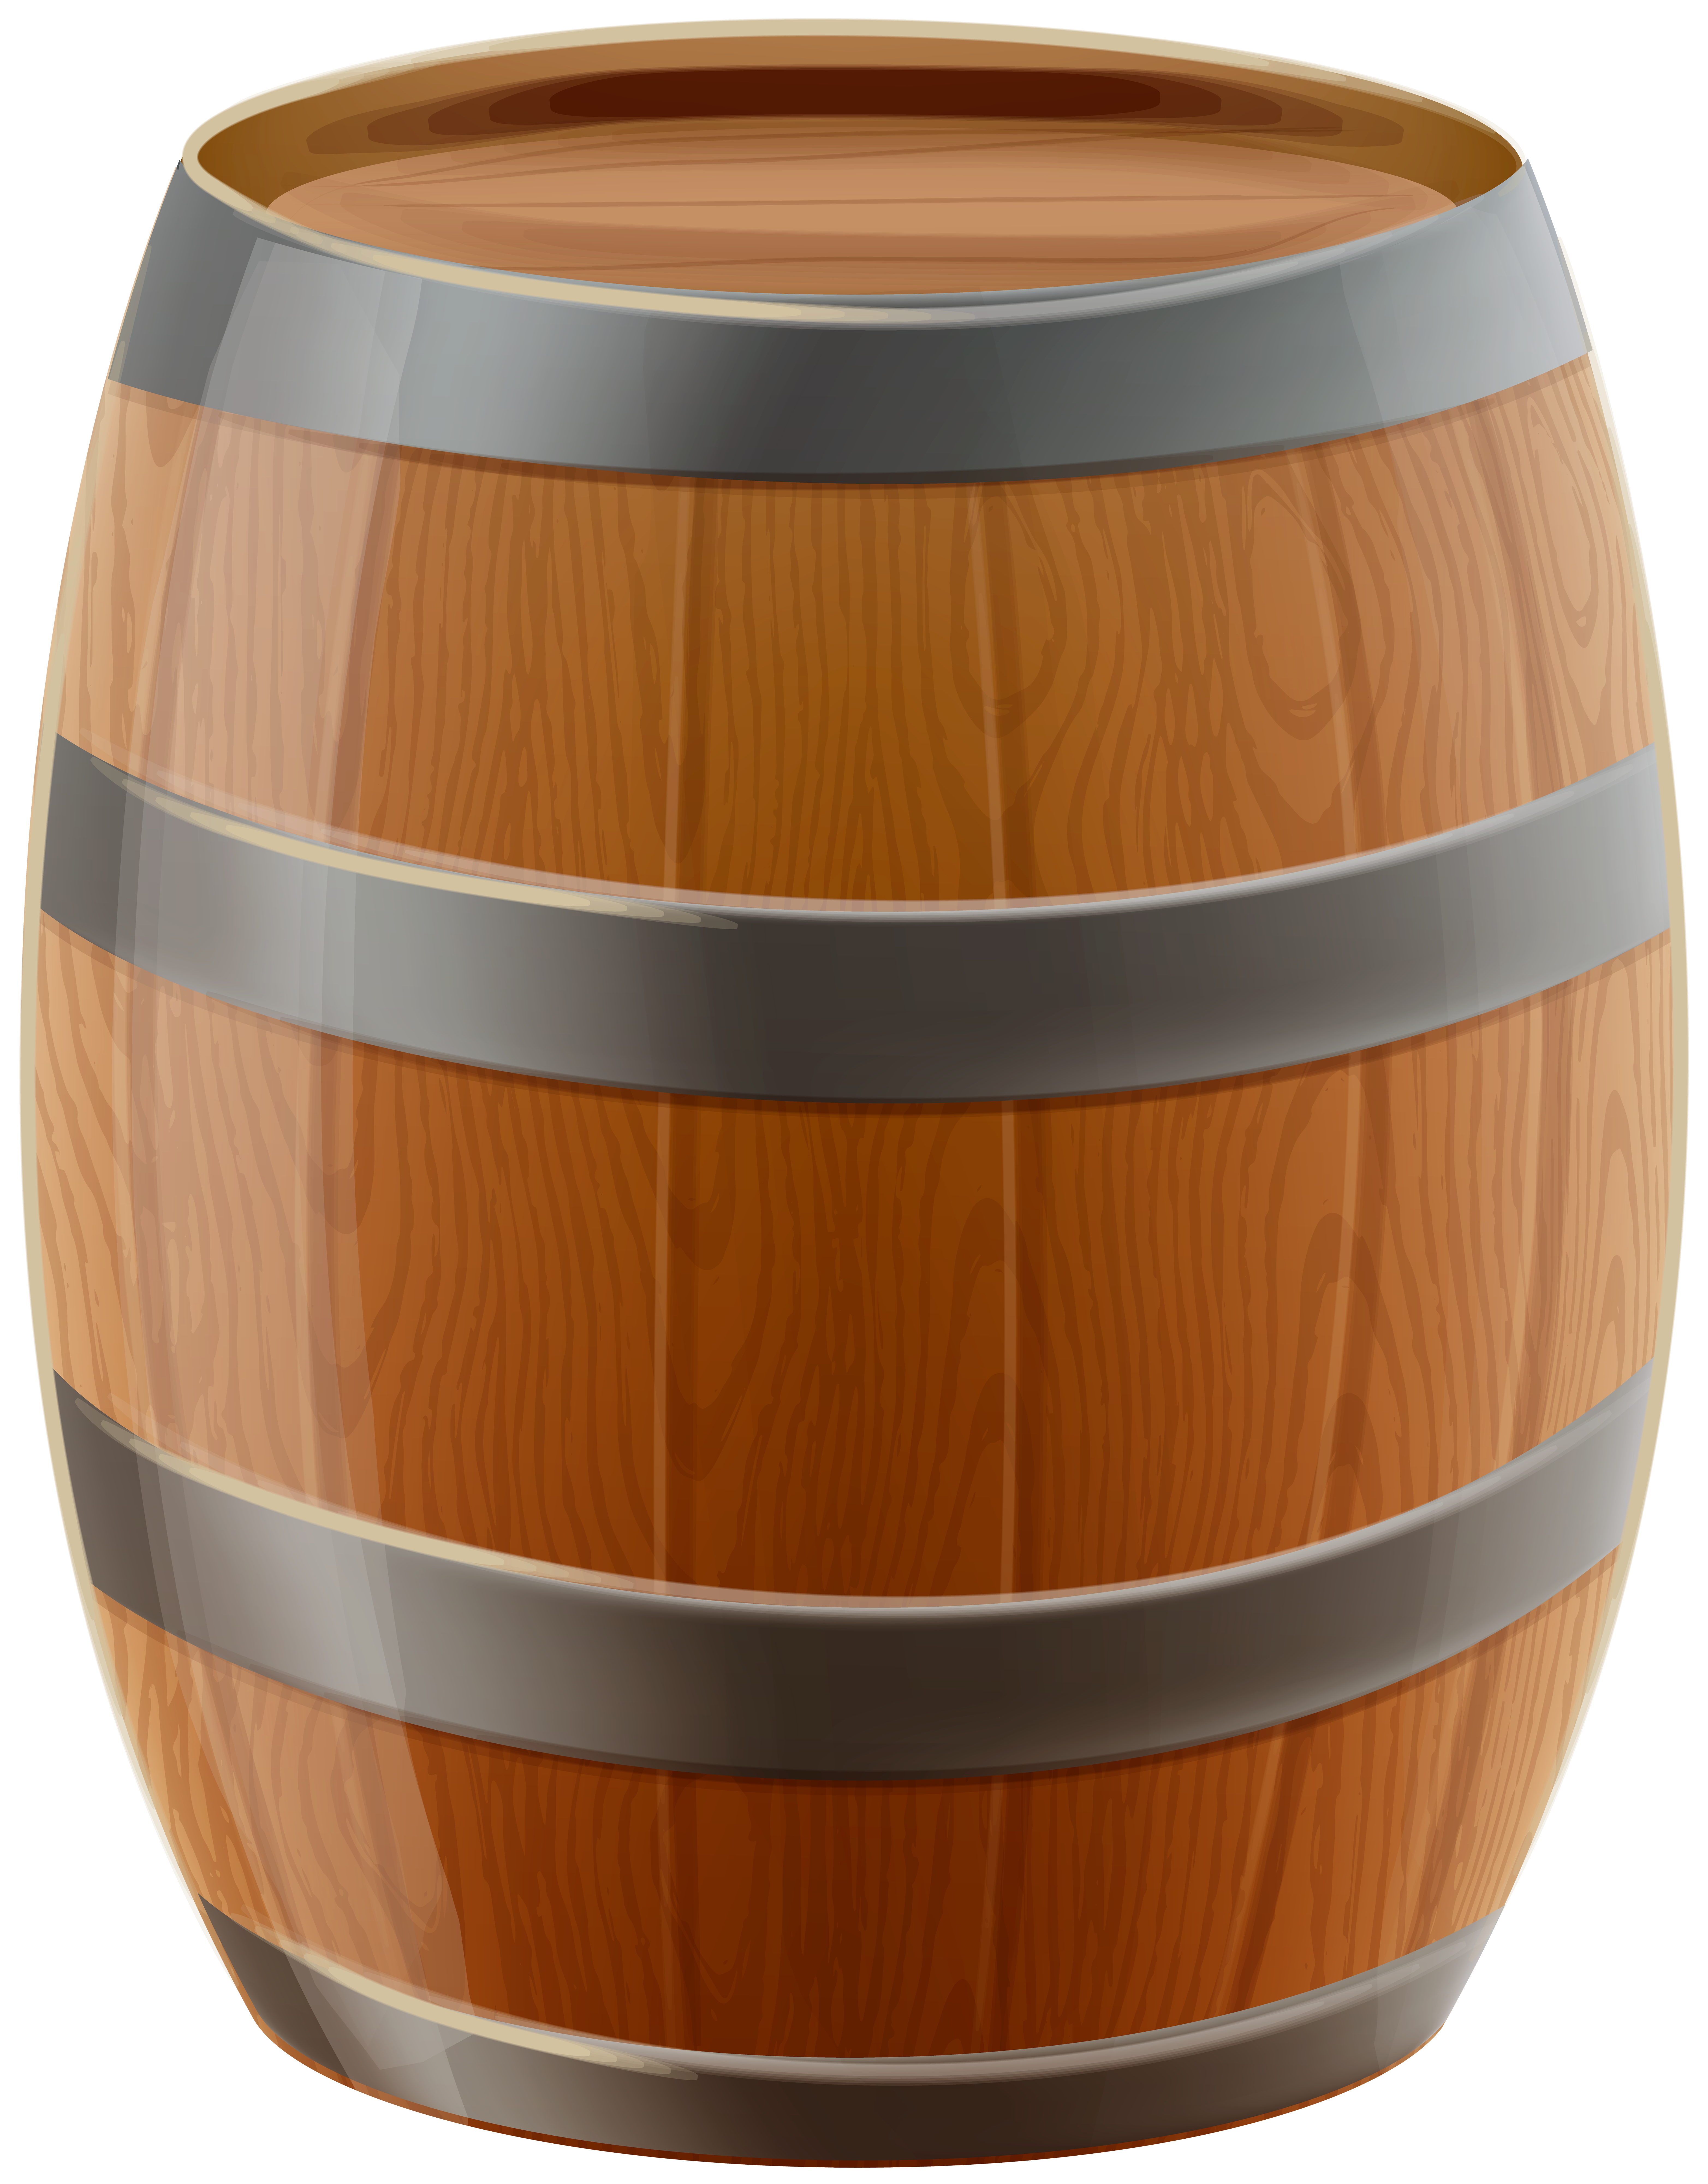 Bbarrel clipart clipart free Wooden Barrel PNG Clip Art | Gallery Yopriceville - High-Quality ... clipart free